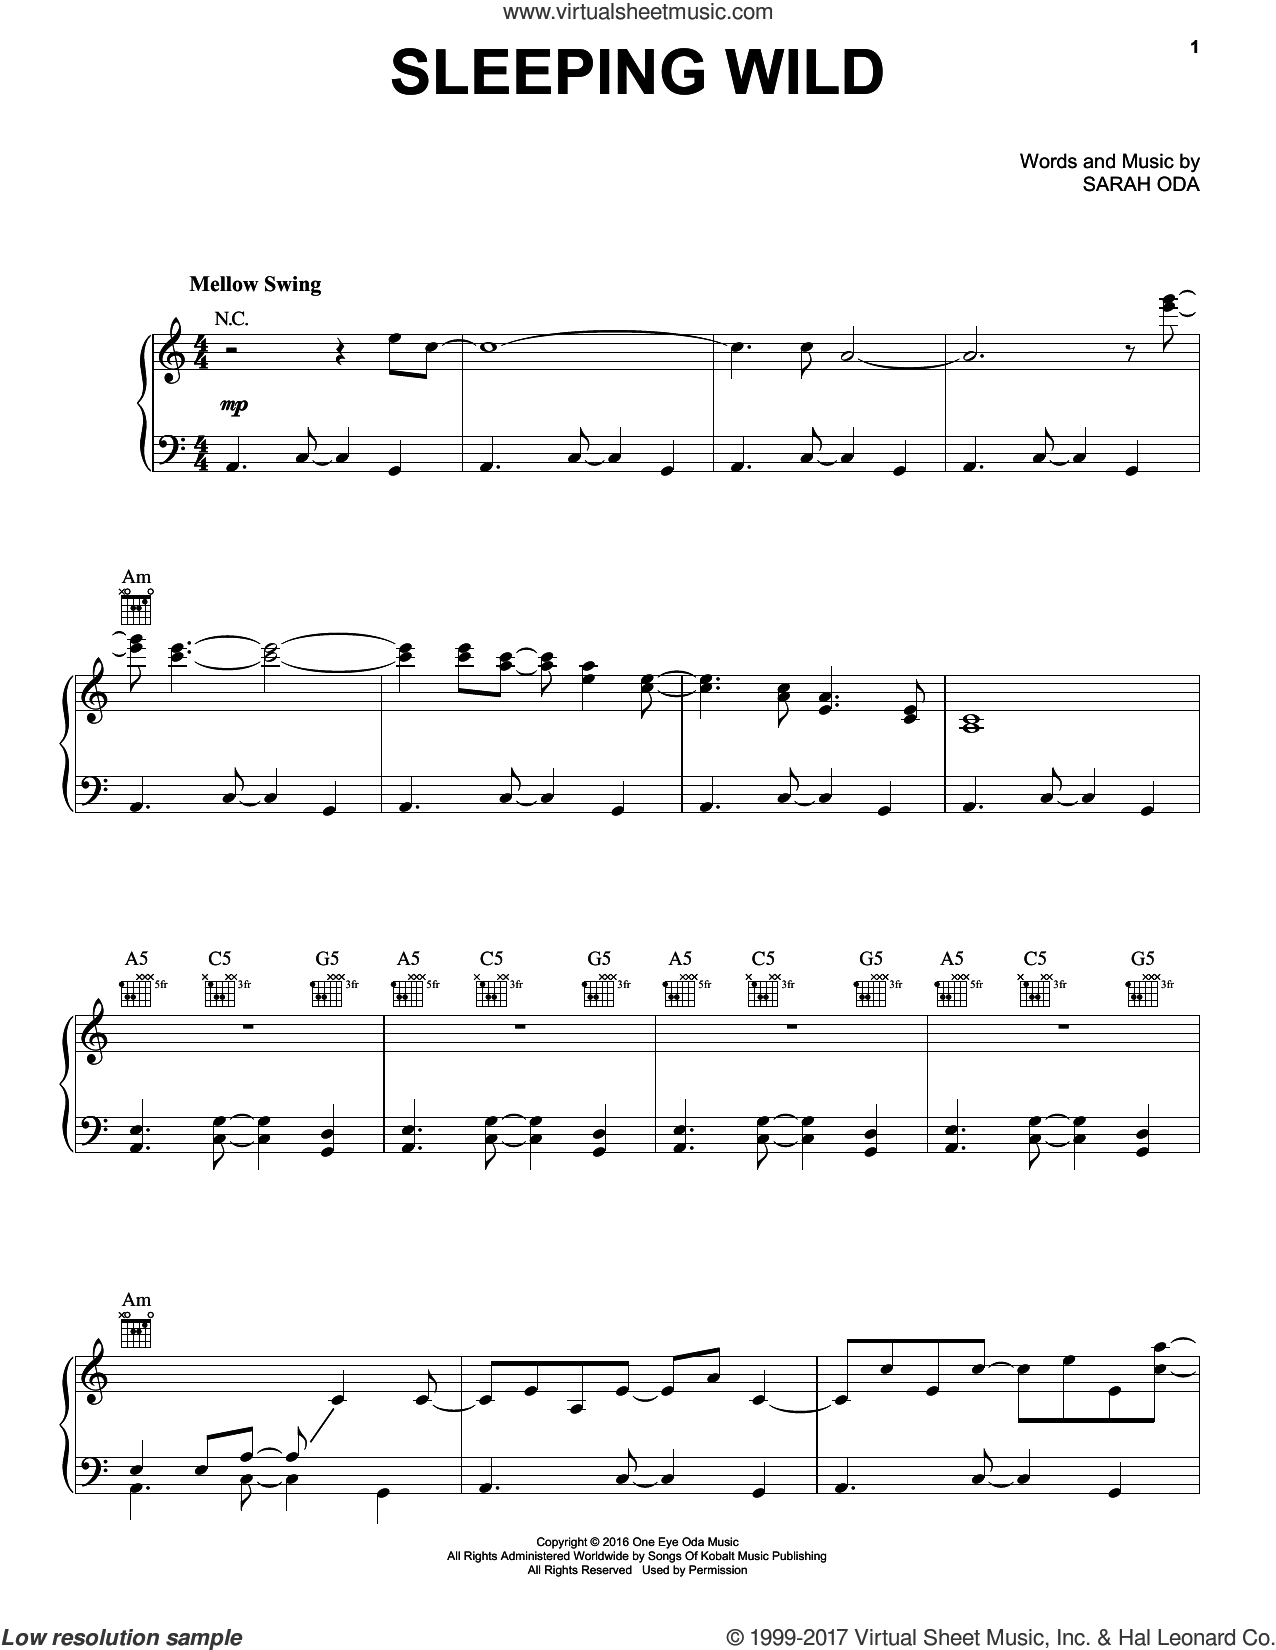 Sleeping Wild sheet music for voice, piano or guitar by Norah Jones and Sarah Oda, intermediate skill level